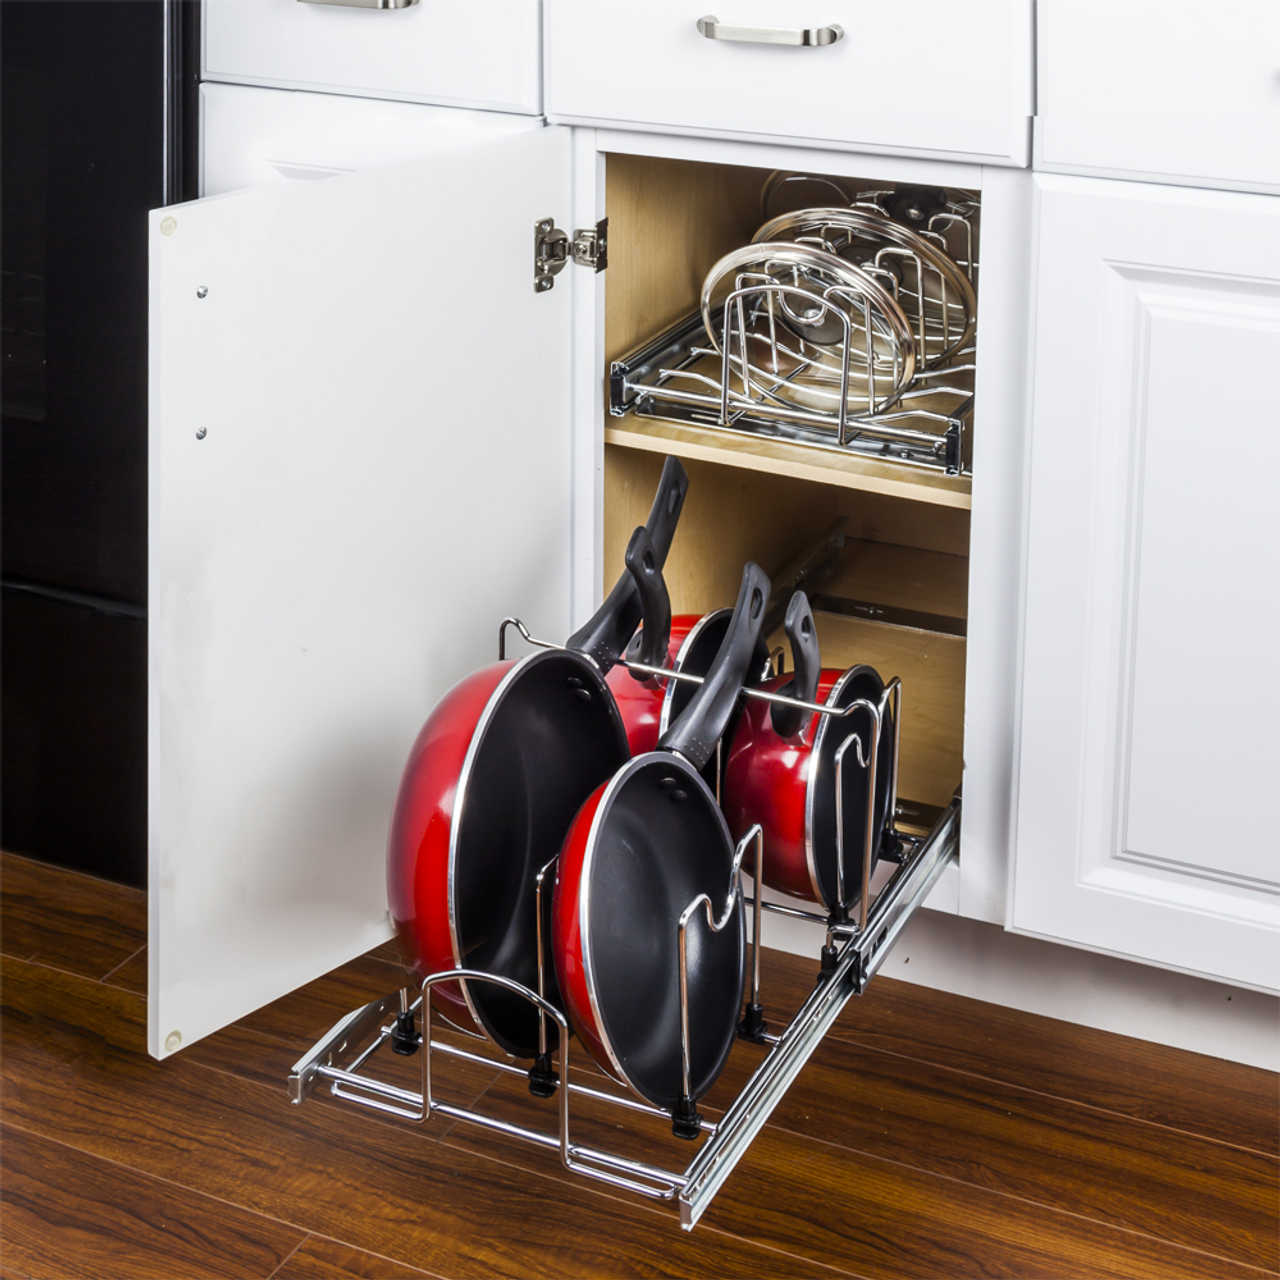 Get Hardware Resources Mppo215 R Pots And Pans Pullout Organizer For 15 Base Cabinet